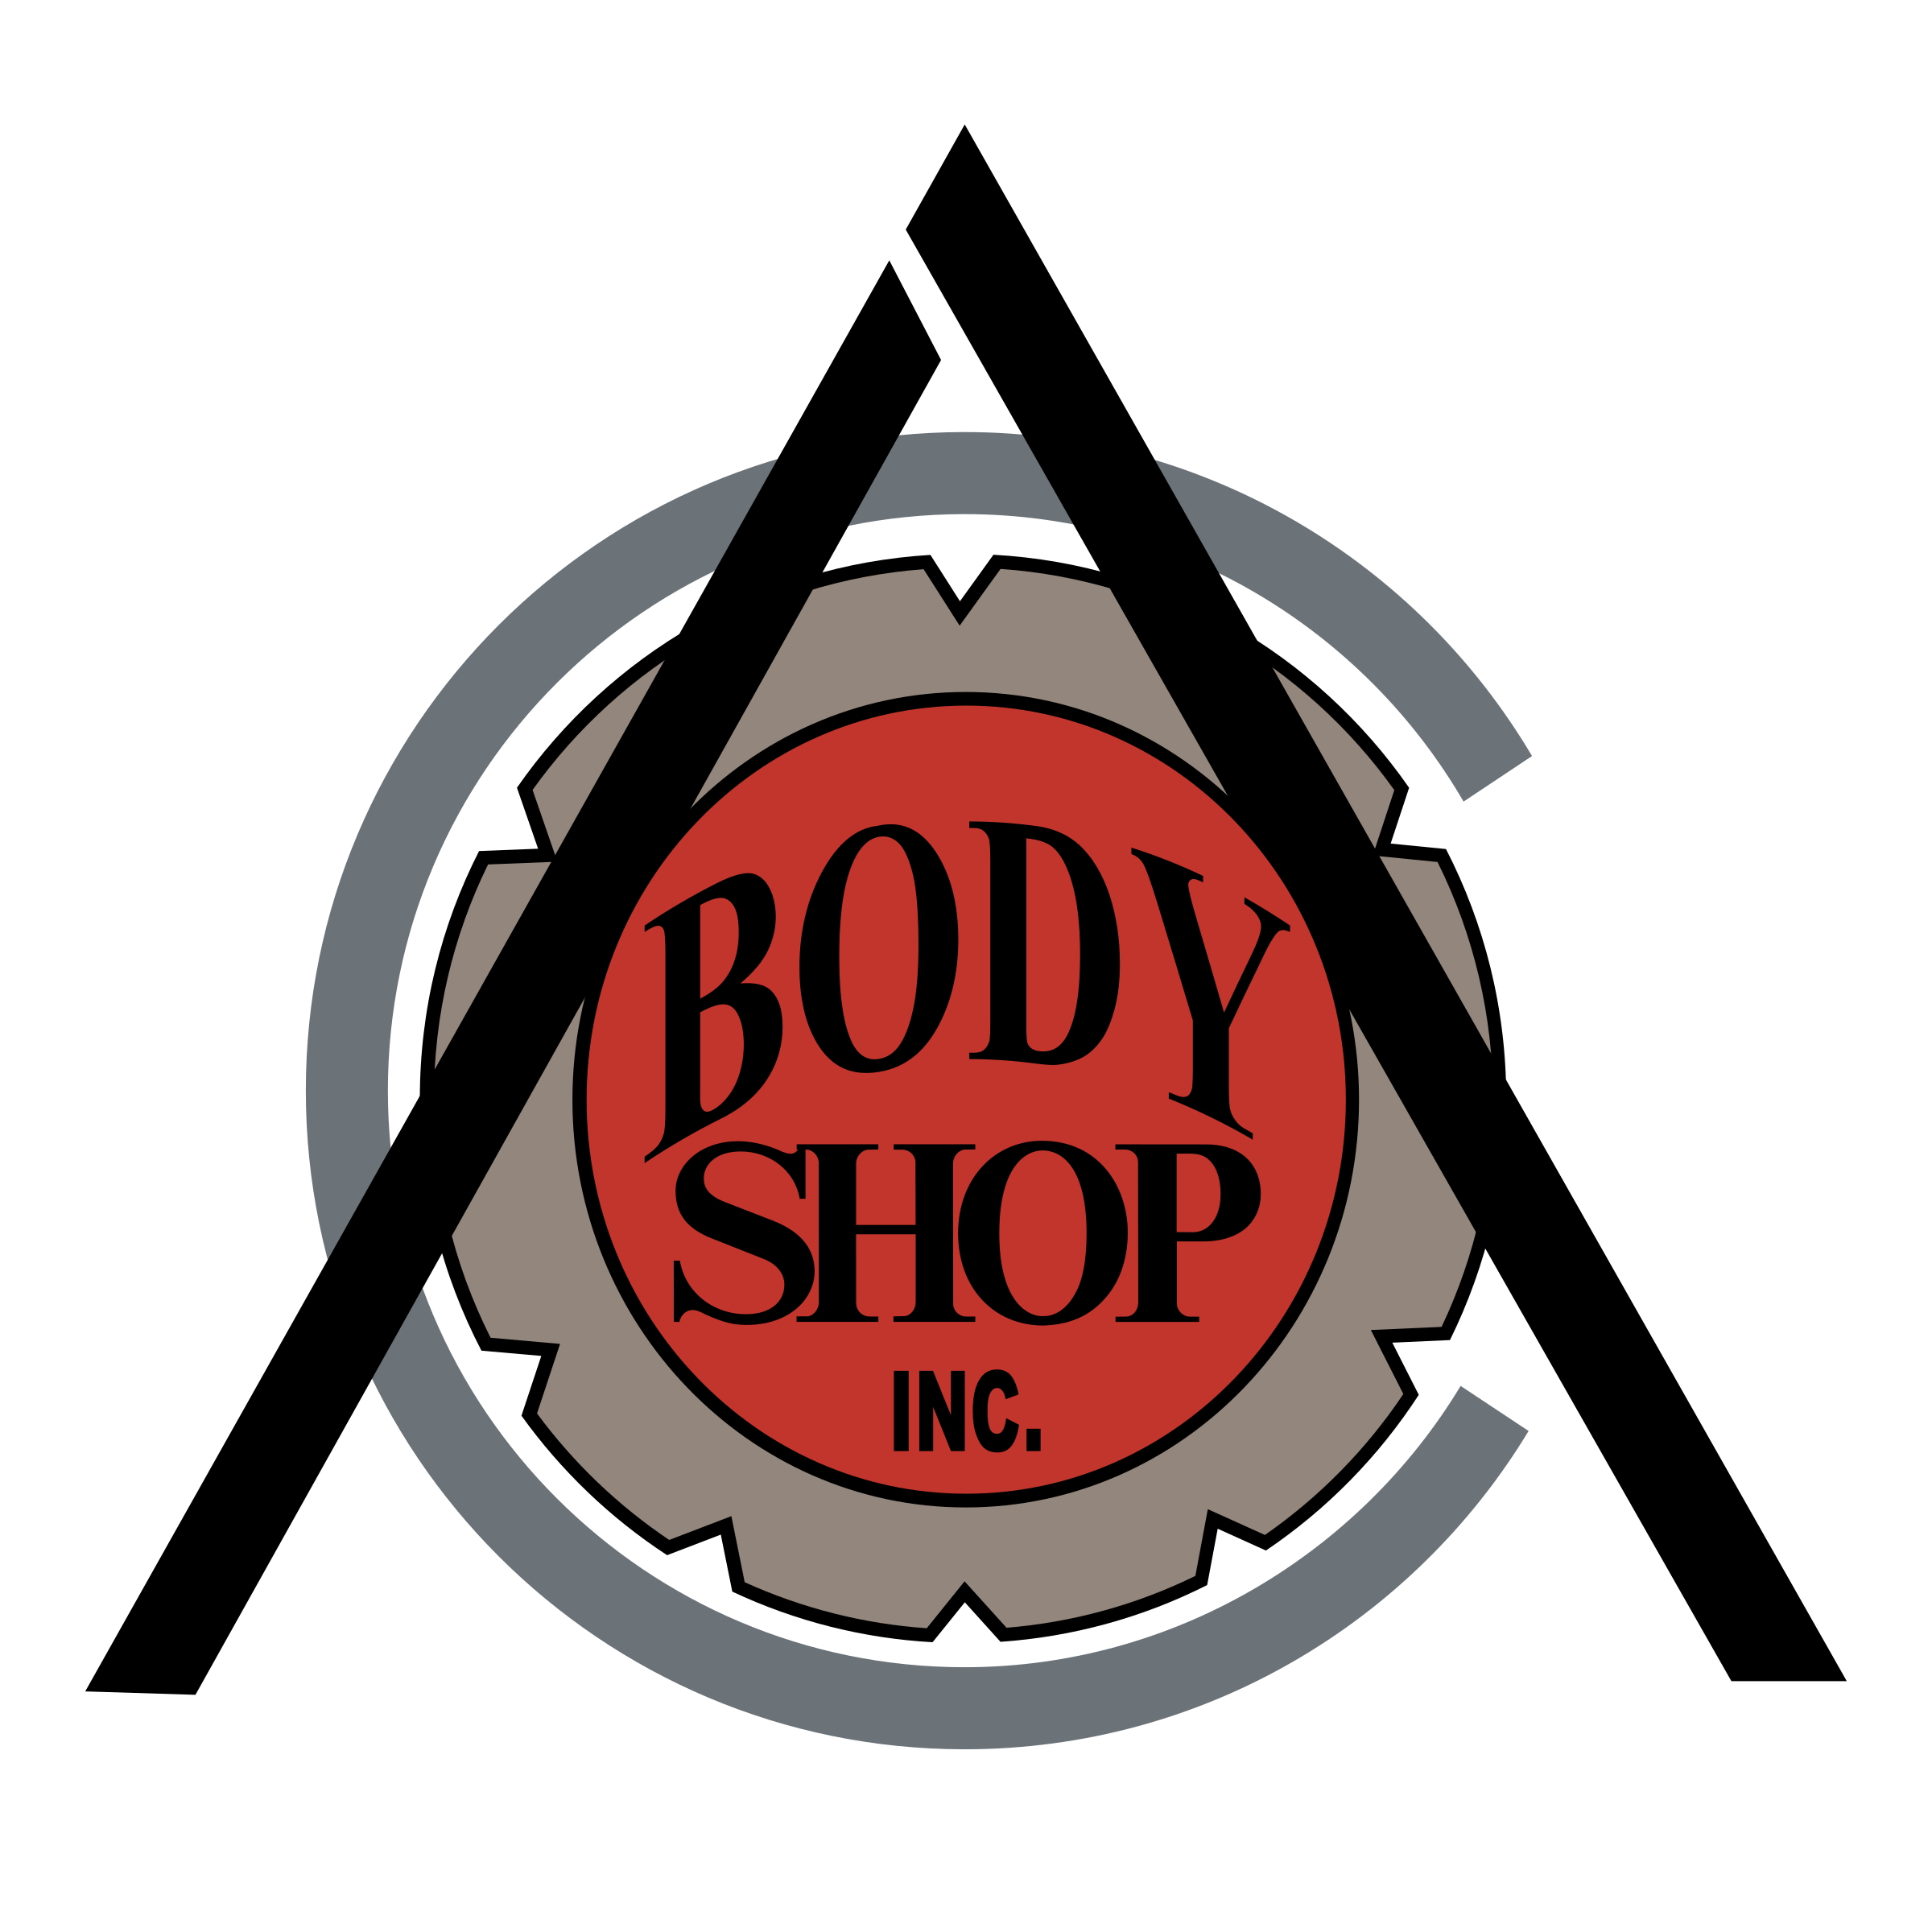 ac body shop logo png transparent svg vector freebie supply rh freebiesupply com body shop logo design body shop logo design